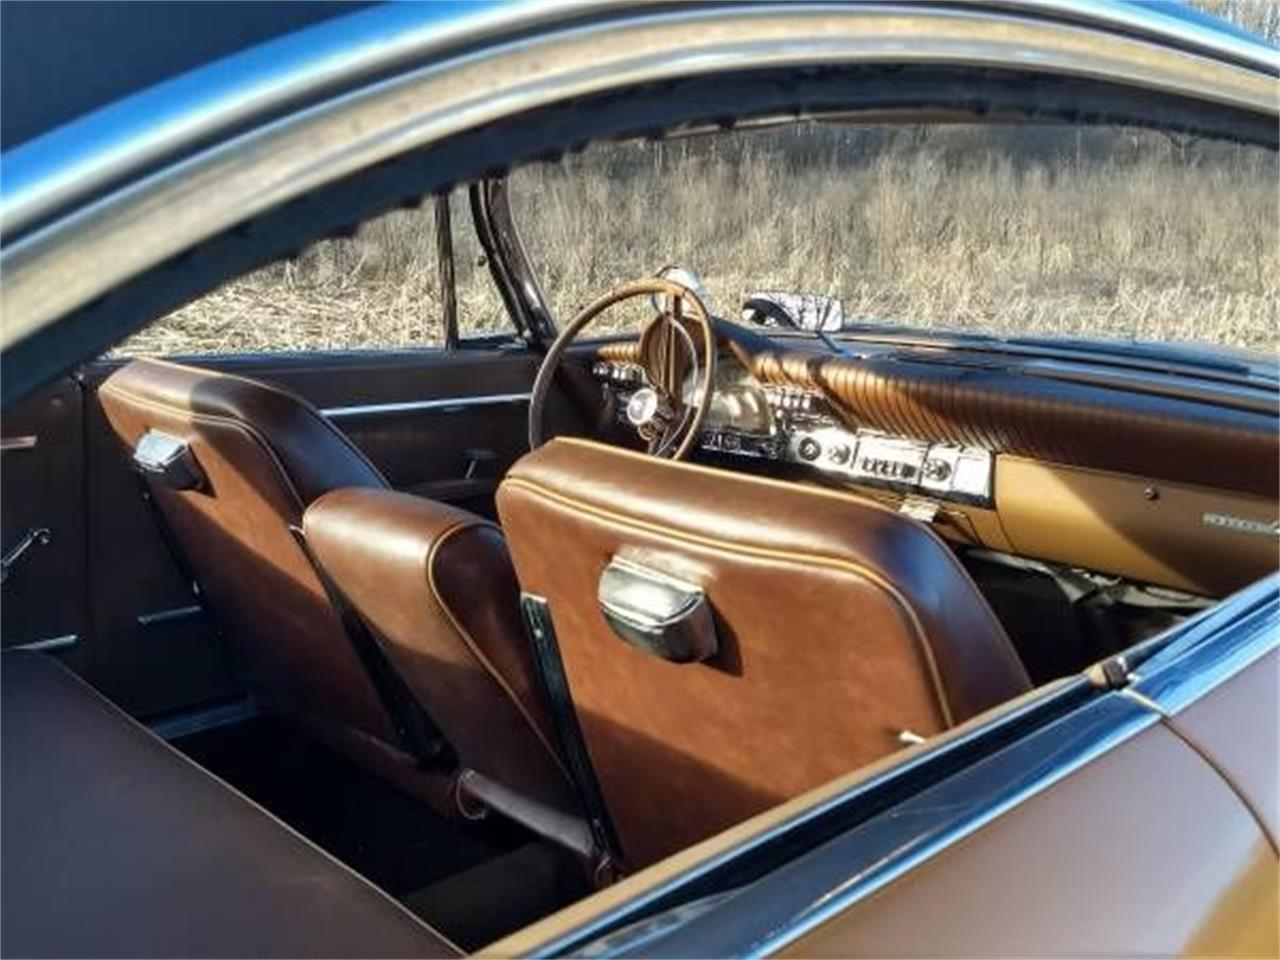 1962 Chrysler 300 for sale in Cadillac, MI – photo 7